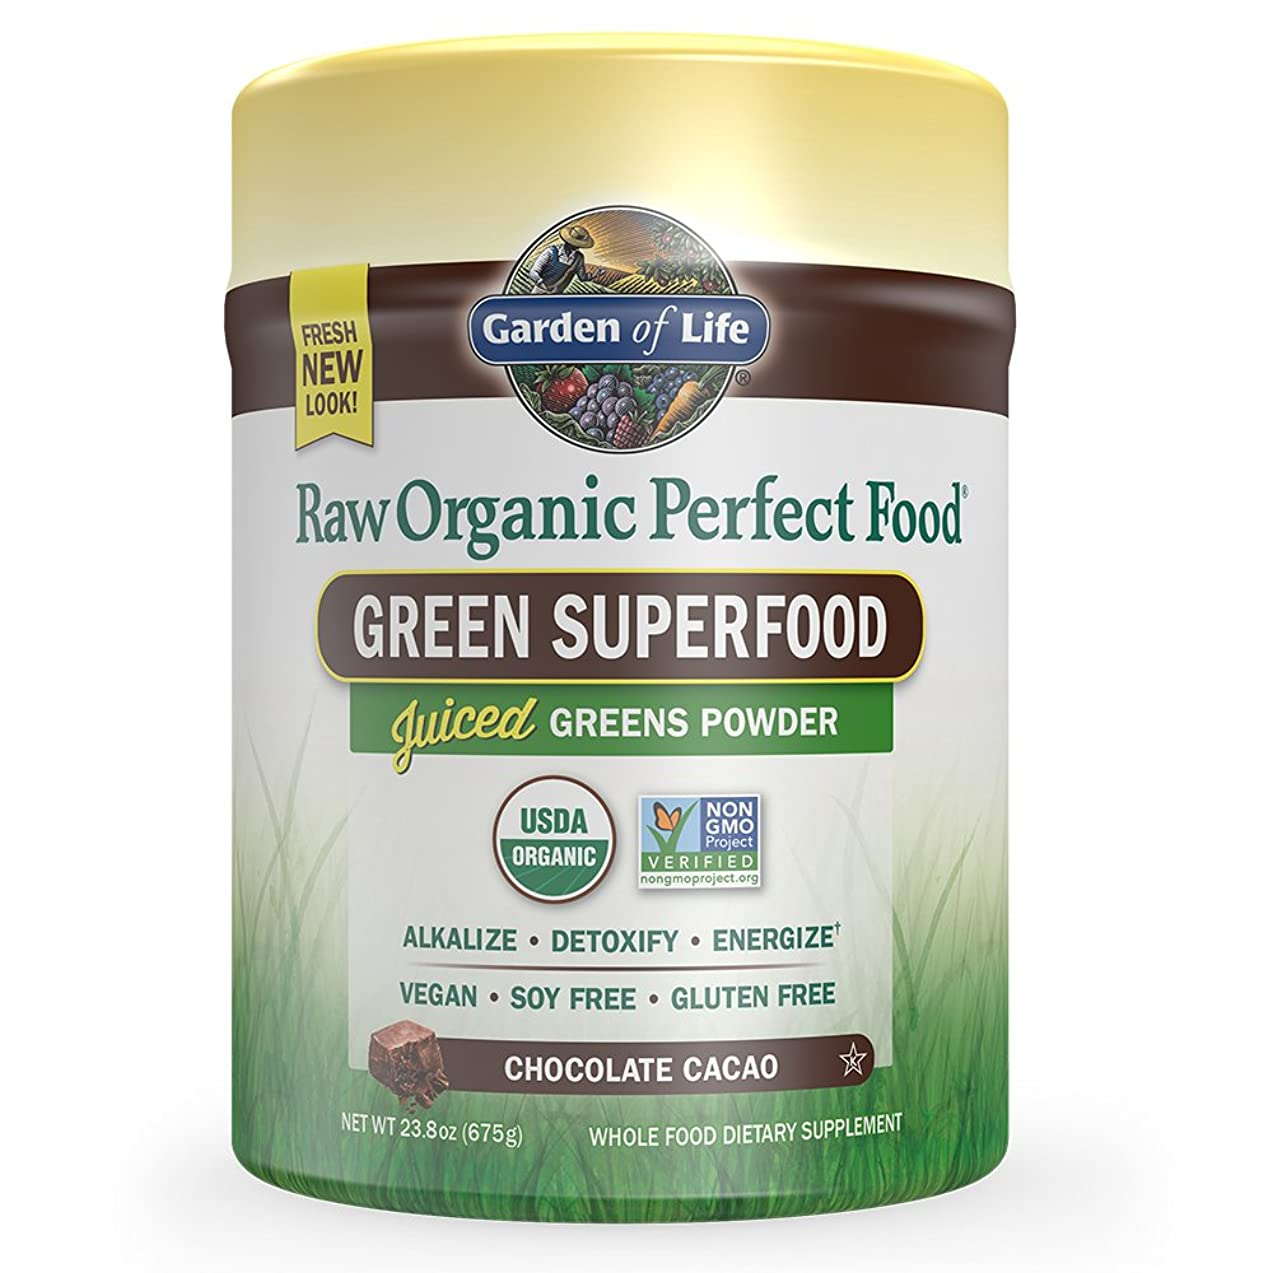 Garden of Life Raw Organic Perfect Food Green Superfood Juiced Greens Powder - Chocolate, 60 Servings - Non-GMO, Gluten Free, Vegan Whole Food Dietary Supplement, Plus Probiotics & Enzymes